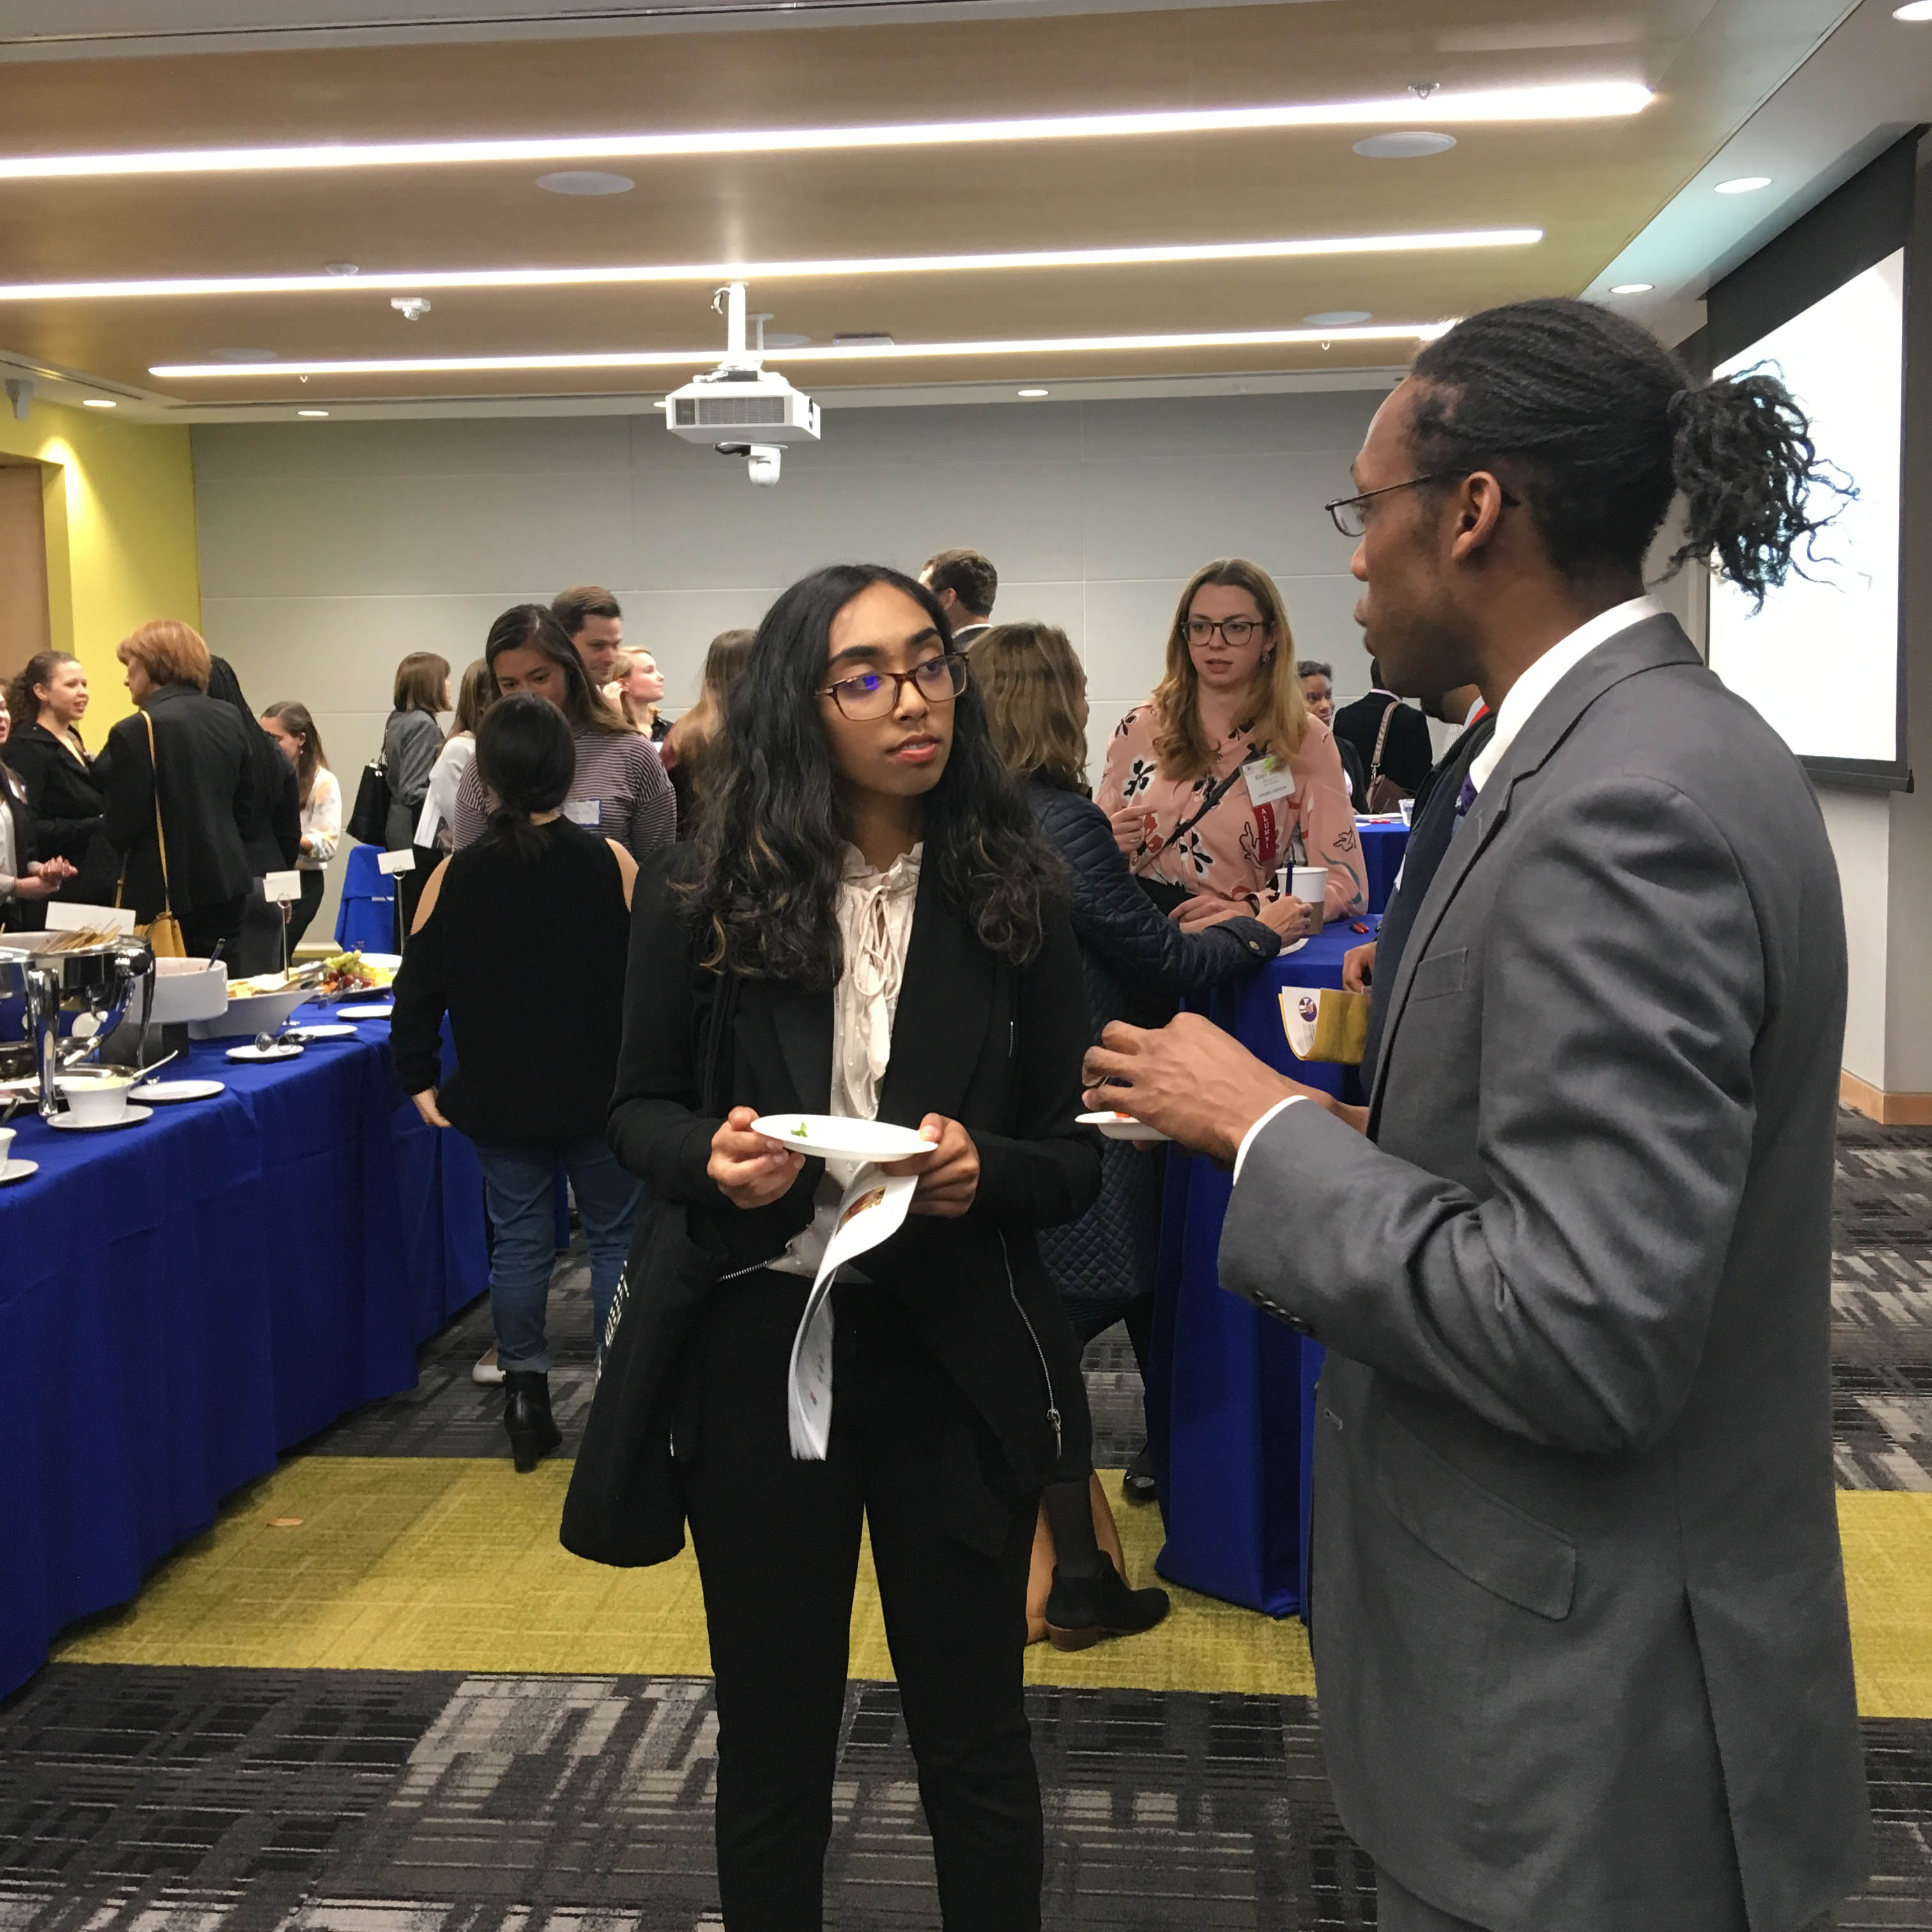 A student talks to a professor at the public health networking reception in Constitution Hall, East Campus